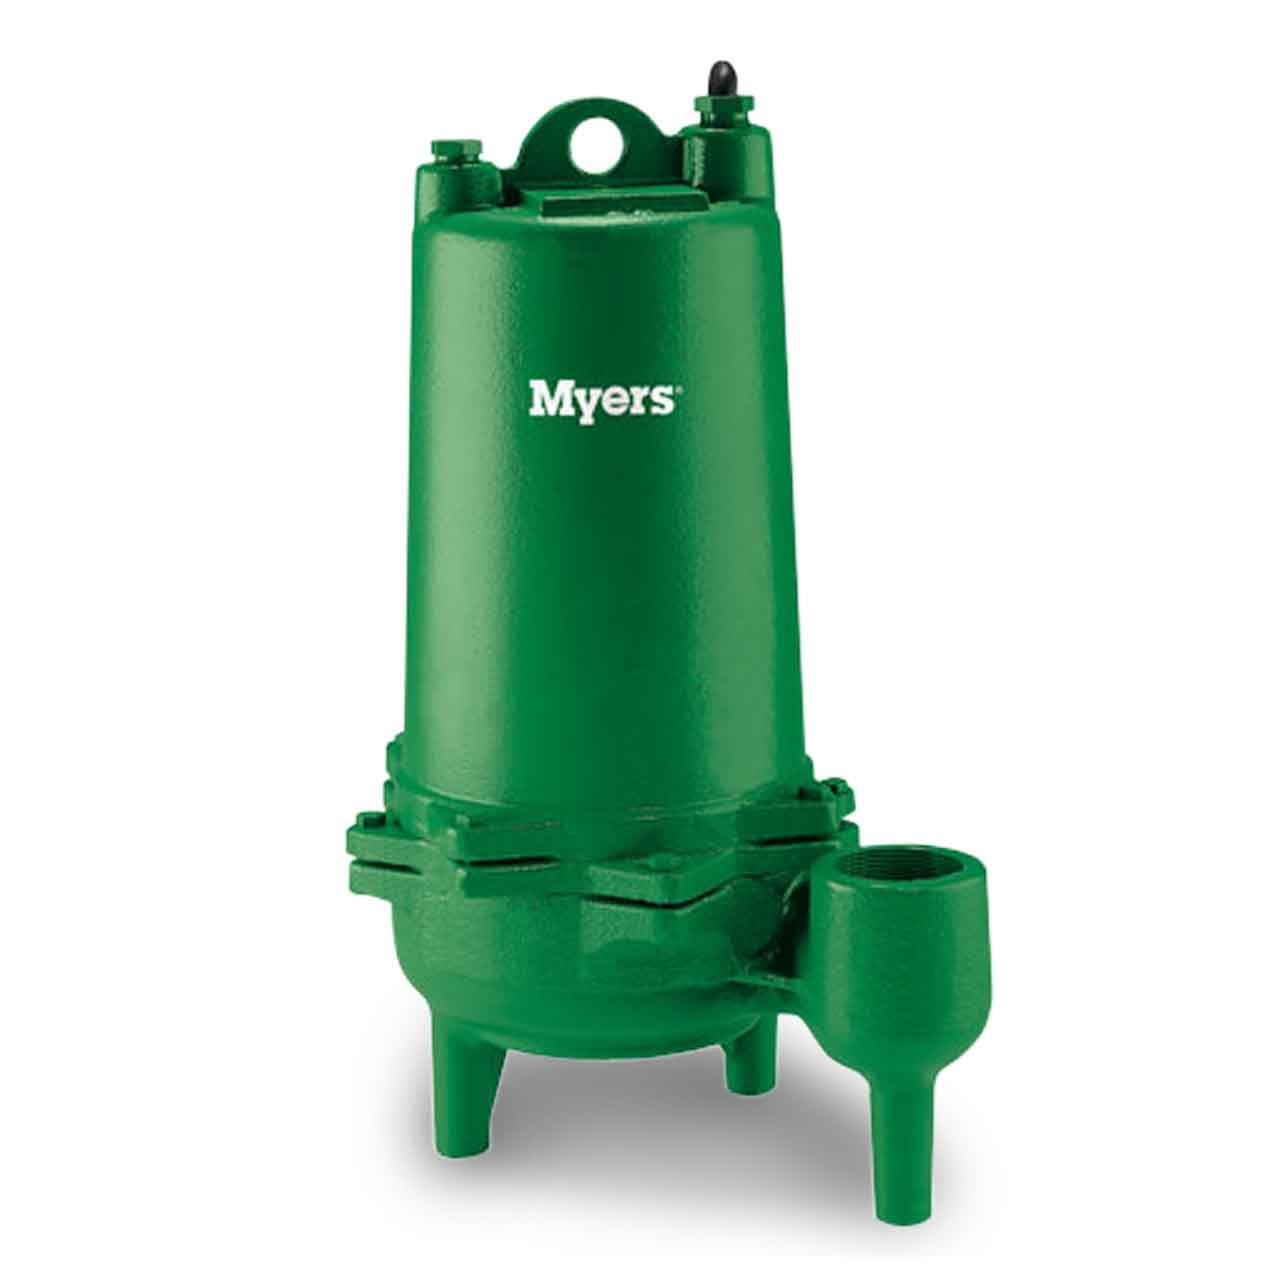 myers myers mw200 21 sewage pump 2 0 hp 230v 1 ph manual 20' cord control panel wiring diagram myers submersible pump wiring diagram #26